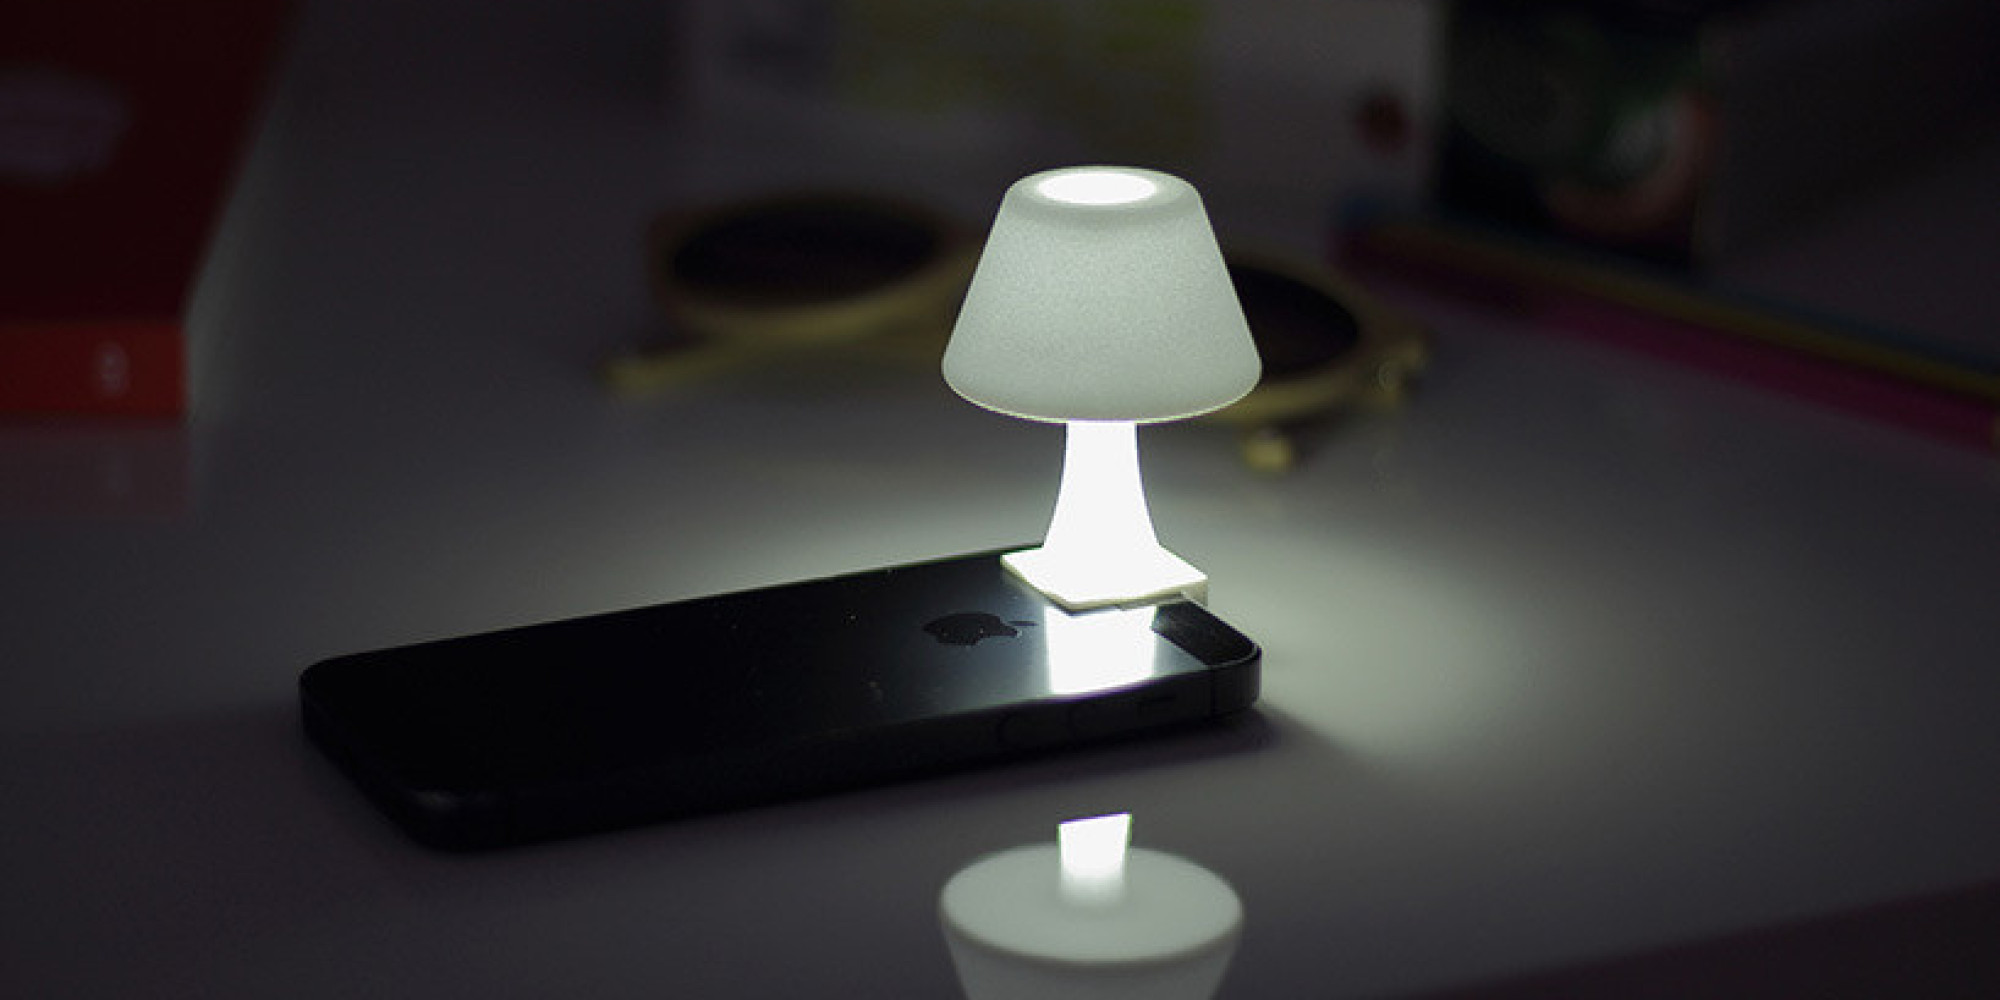 un abat jour pour transformer votre iphone en mini lampe de chevet. Black Bedroom Furniture Sets. Home Design Ideas